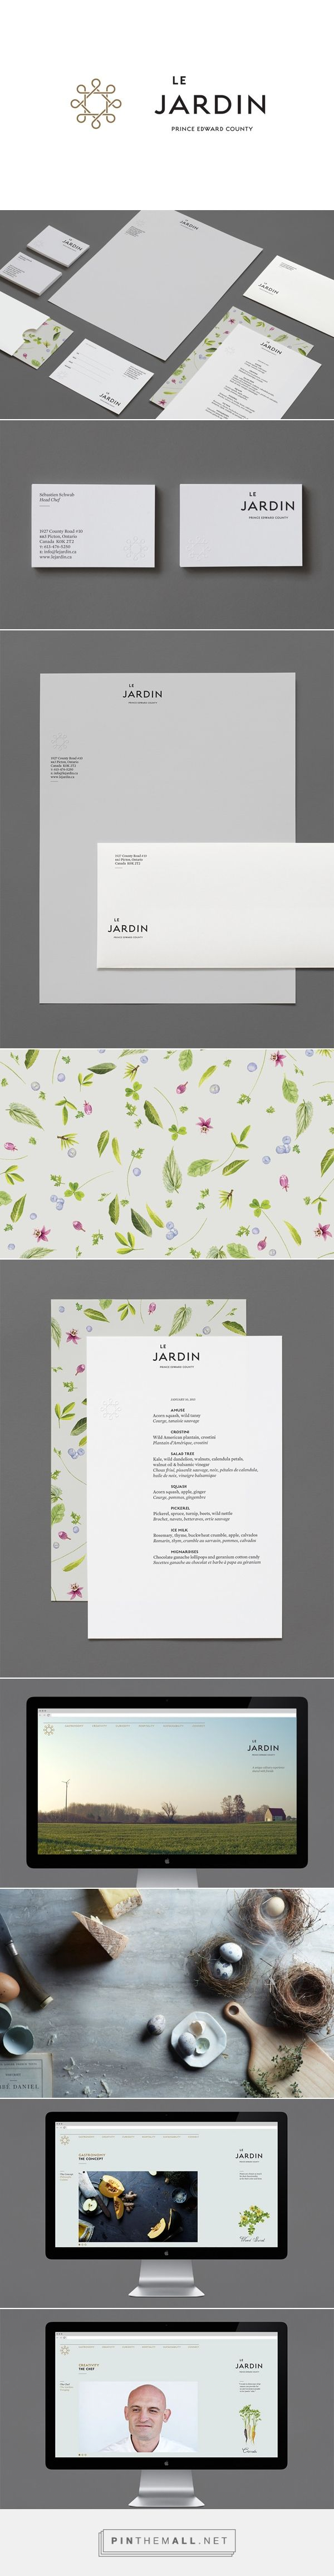 Le Jardin on Branding Served - created via http://pinthemall.net